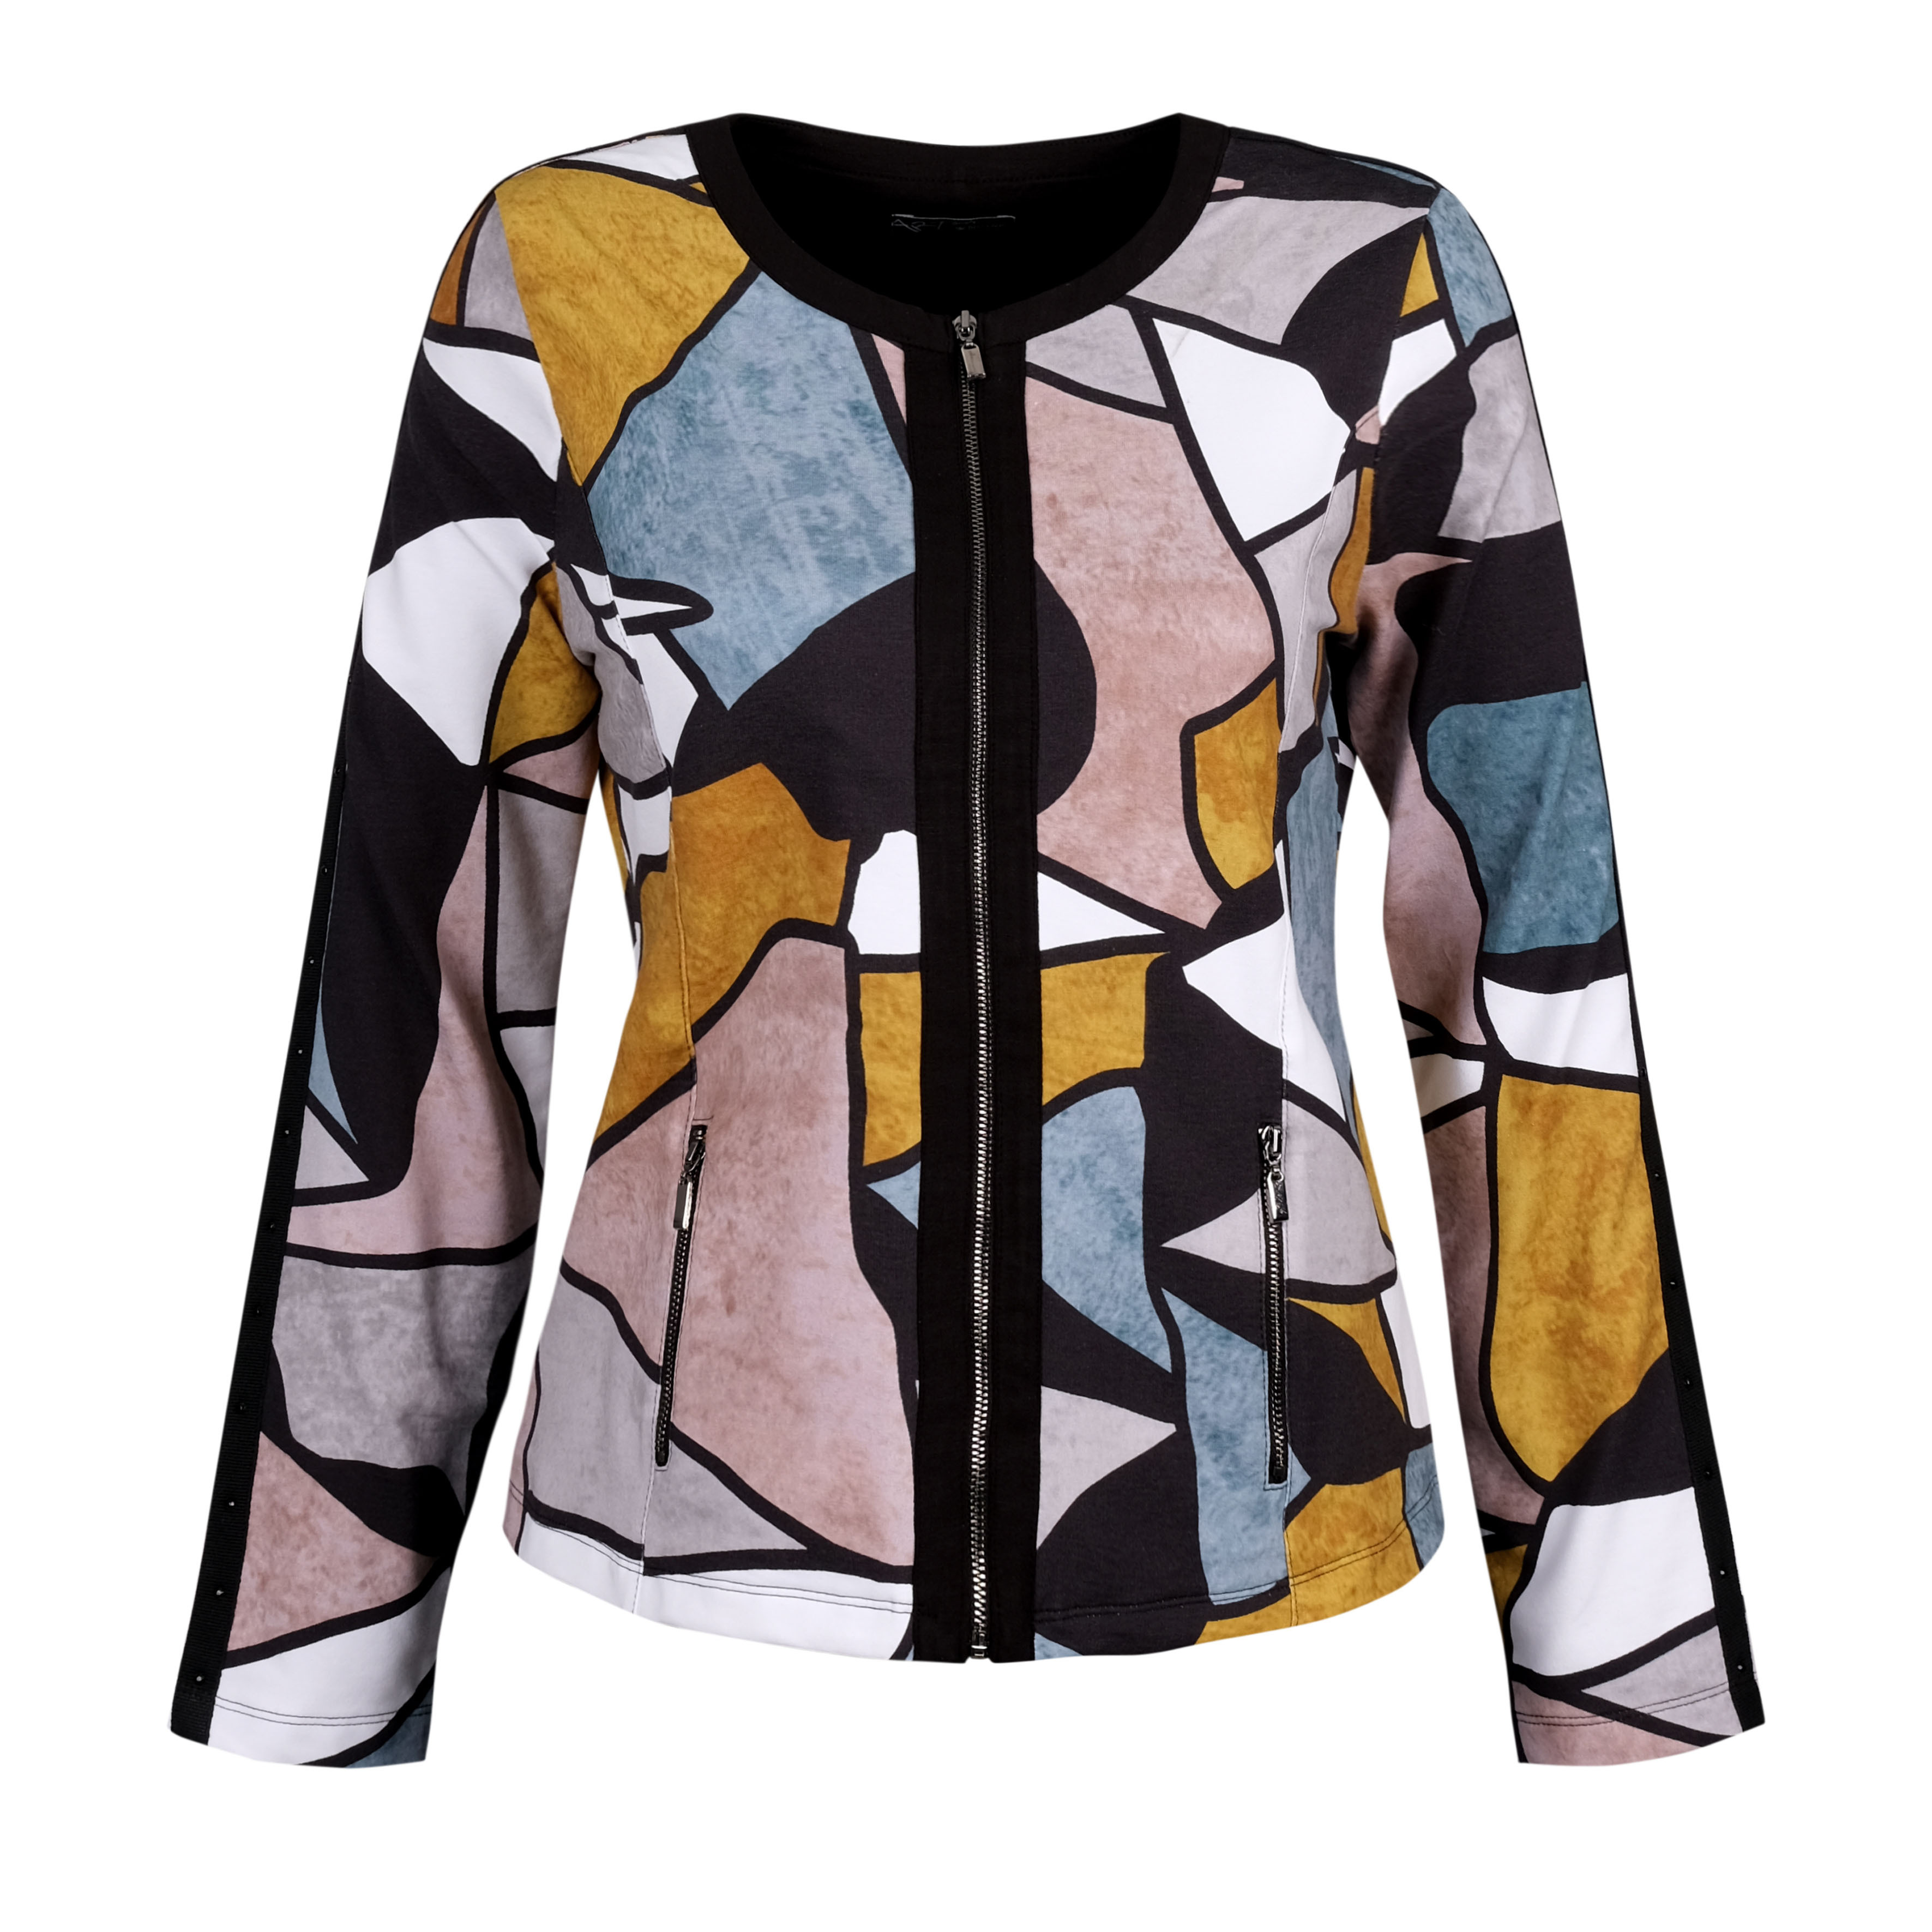 Simply Art Dolcezza: Lost In Time Fancy Wearable Art  Zip Jacket (1 Available At Special Price!) Dolcezza_SimplyArt_70695